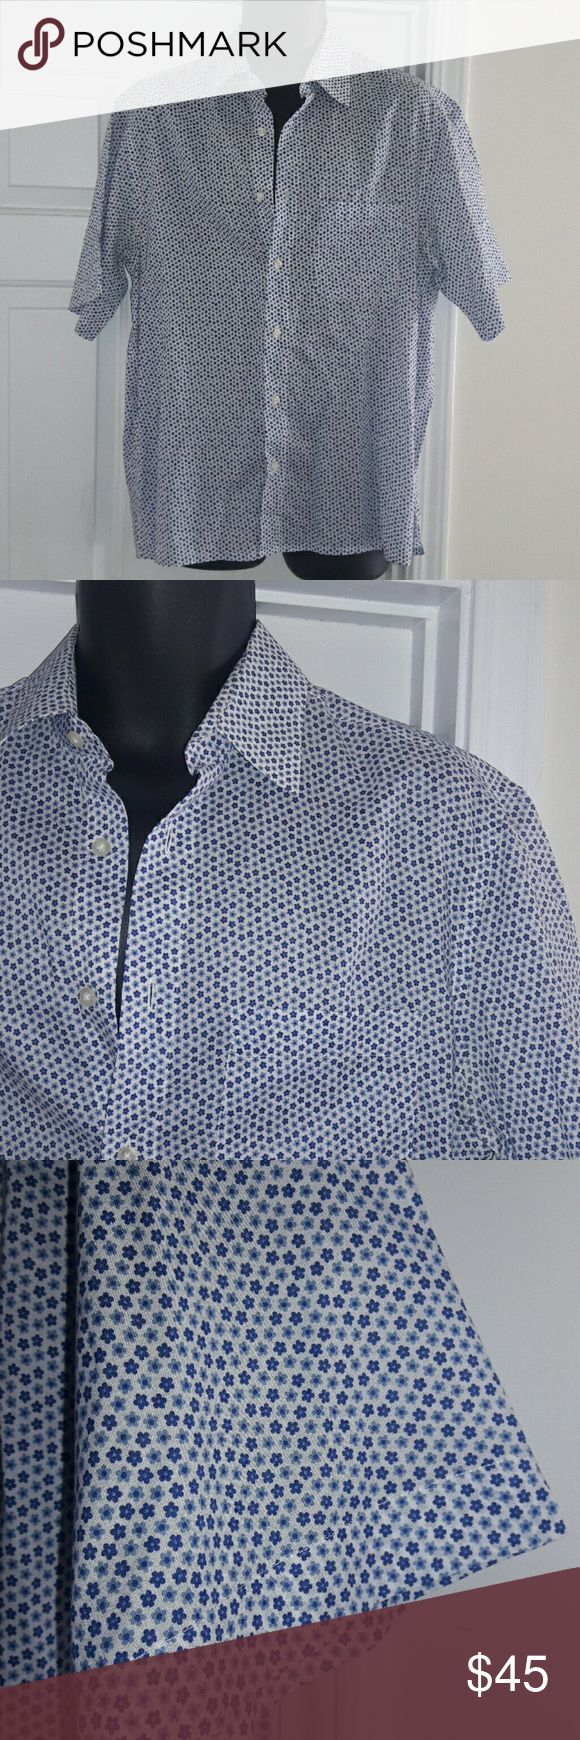 SCAPPINO JEANS Casual Shirt This awesome Scappino Jeans casual shirt is button-down, short-sleeve with blue flower design on white. In brand new condition without tags. Scappino Jeans Shirts Casual Button Down Shirts